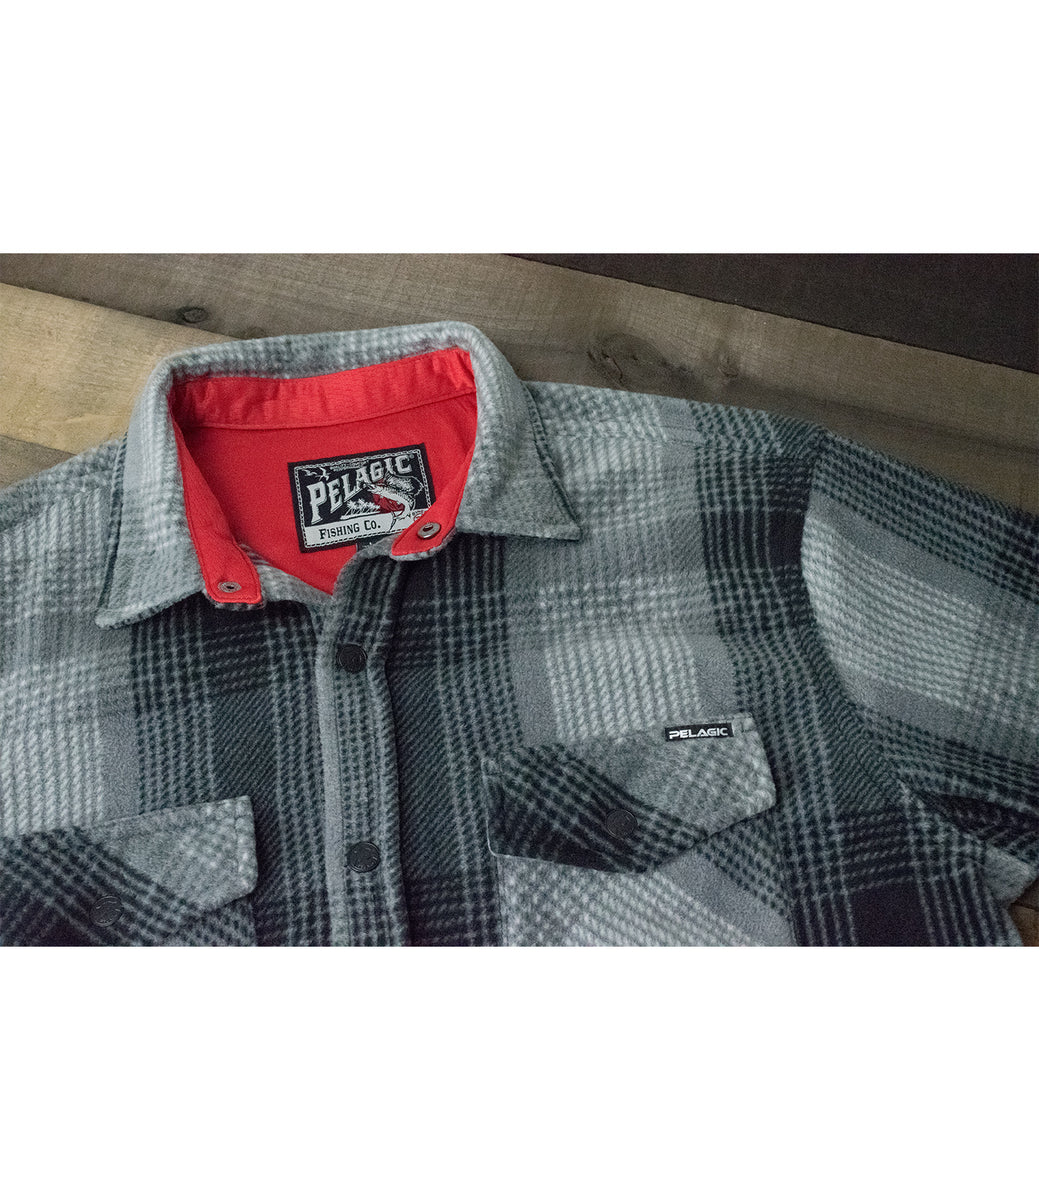 Quest Performance Flannel Big Image - 3